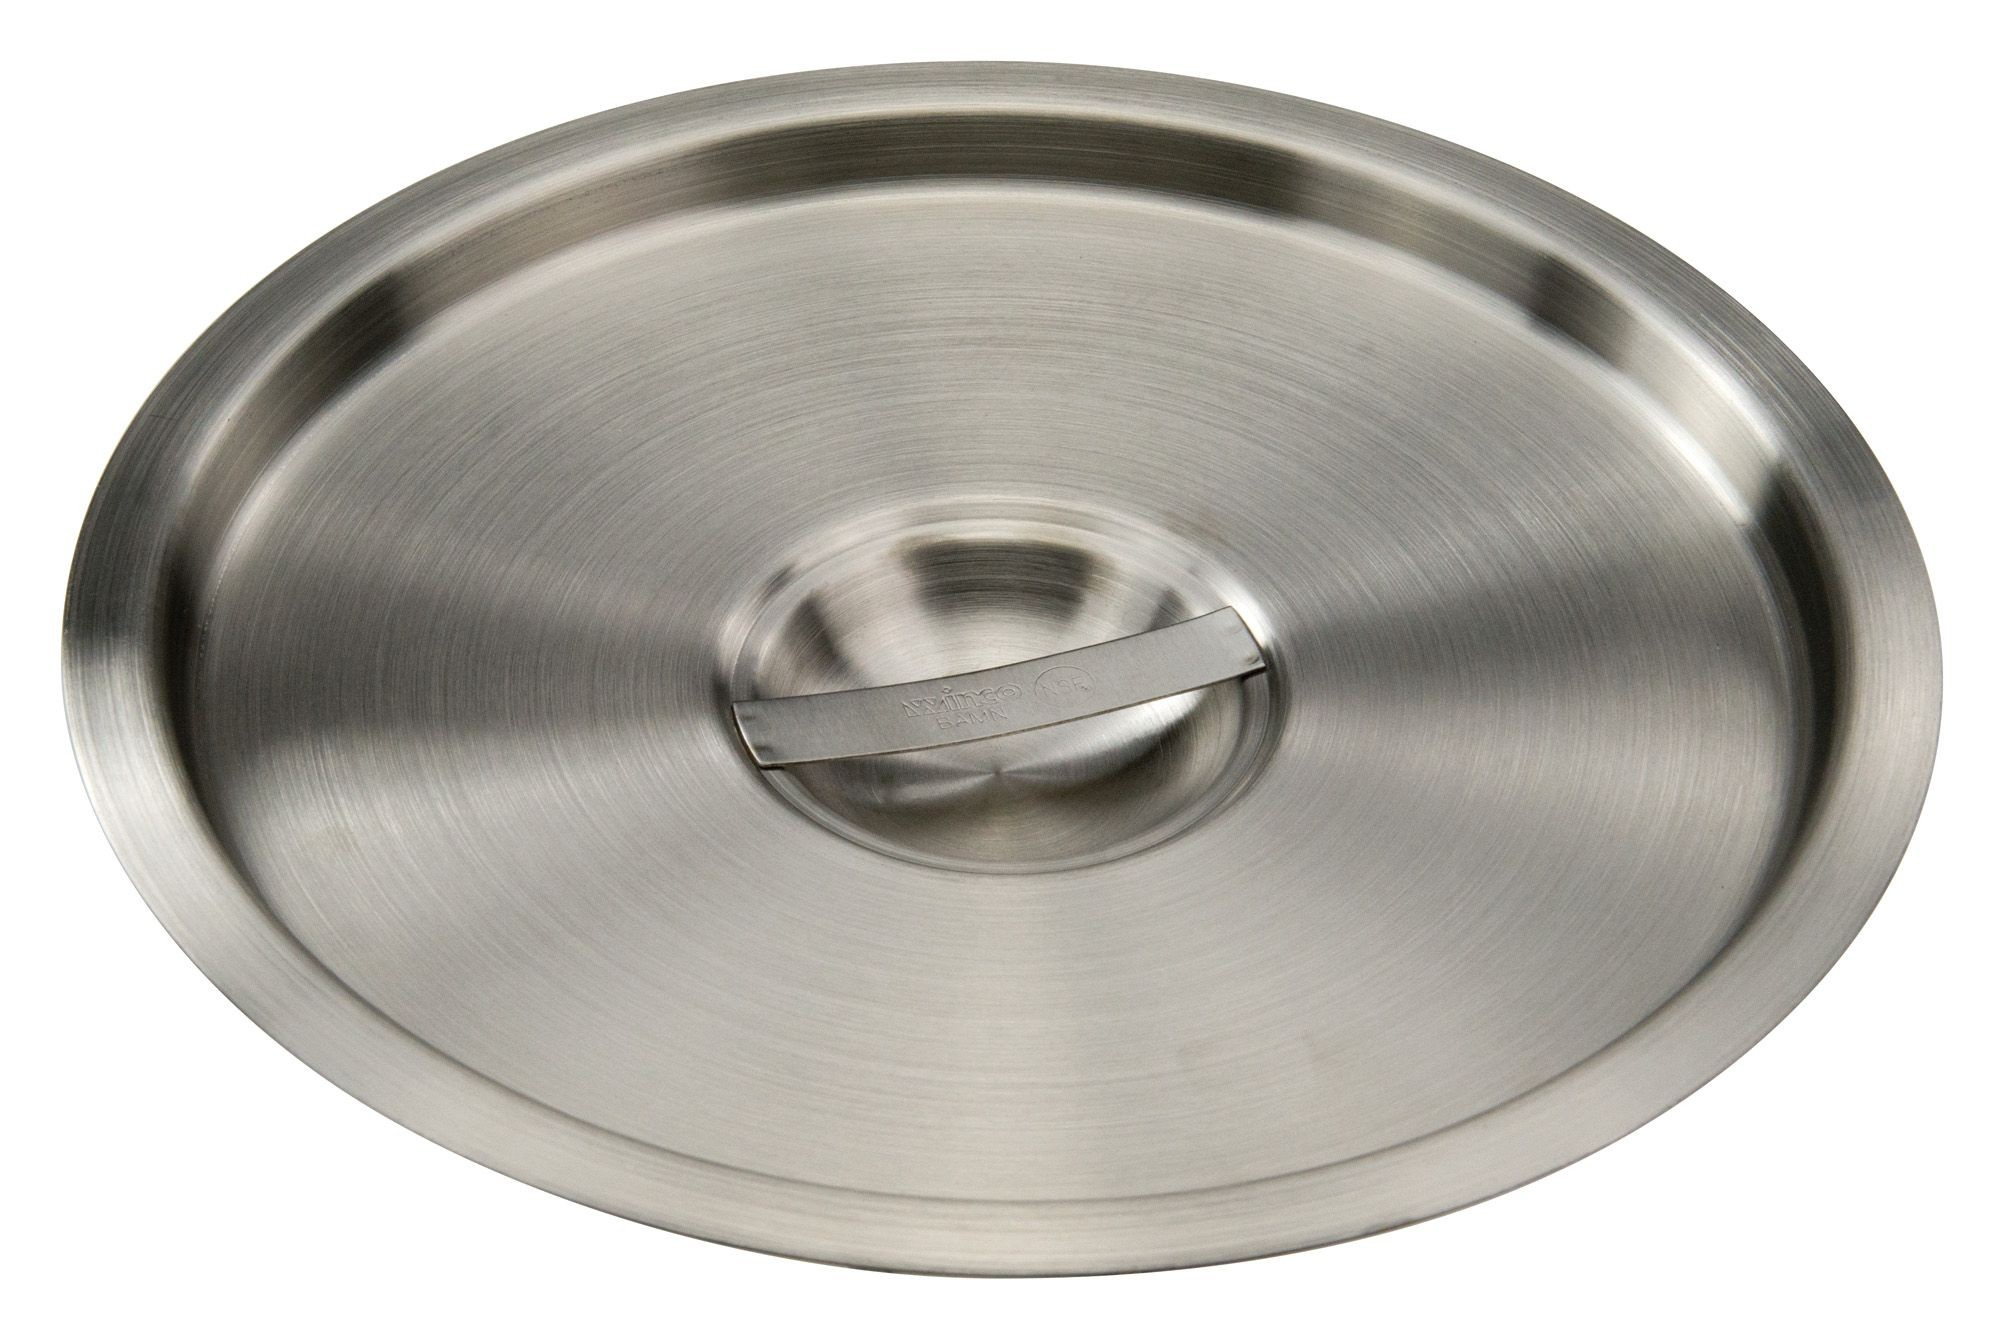 Stainless Steel Cover For 12-Qt Bain Marie